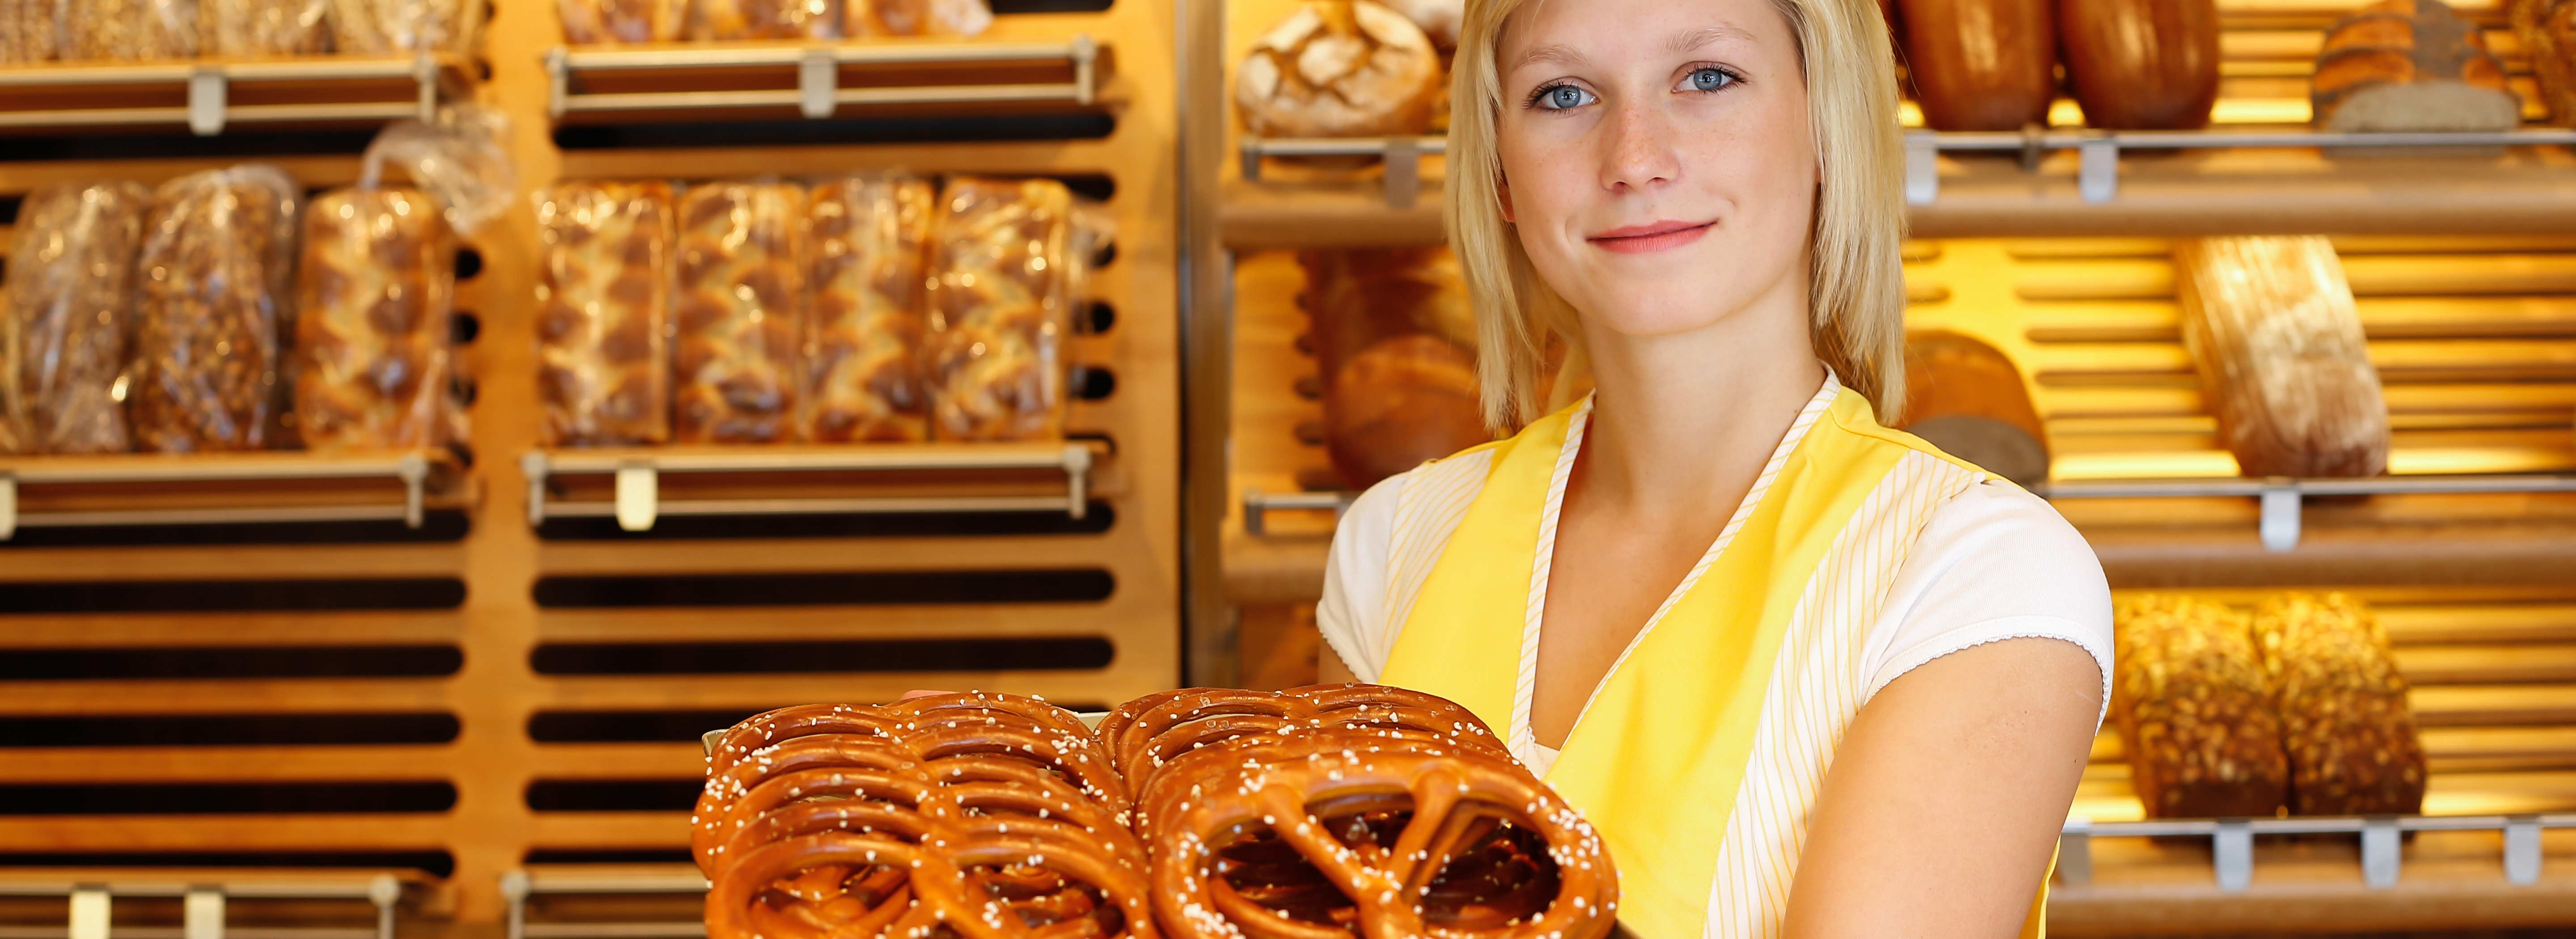 Bäckerei – Konditorei - Chocolaterie